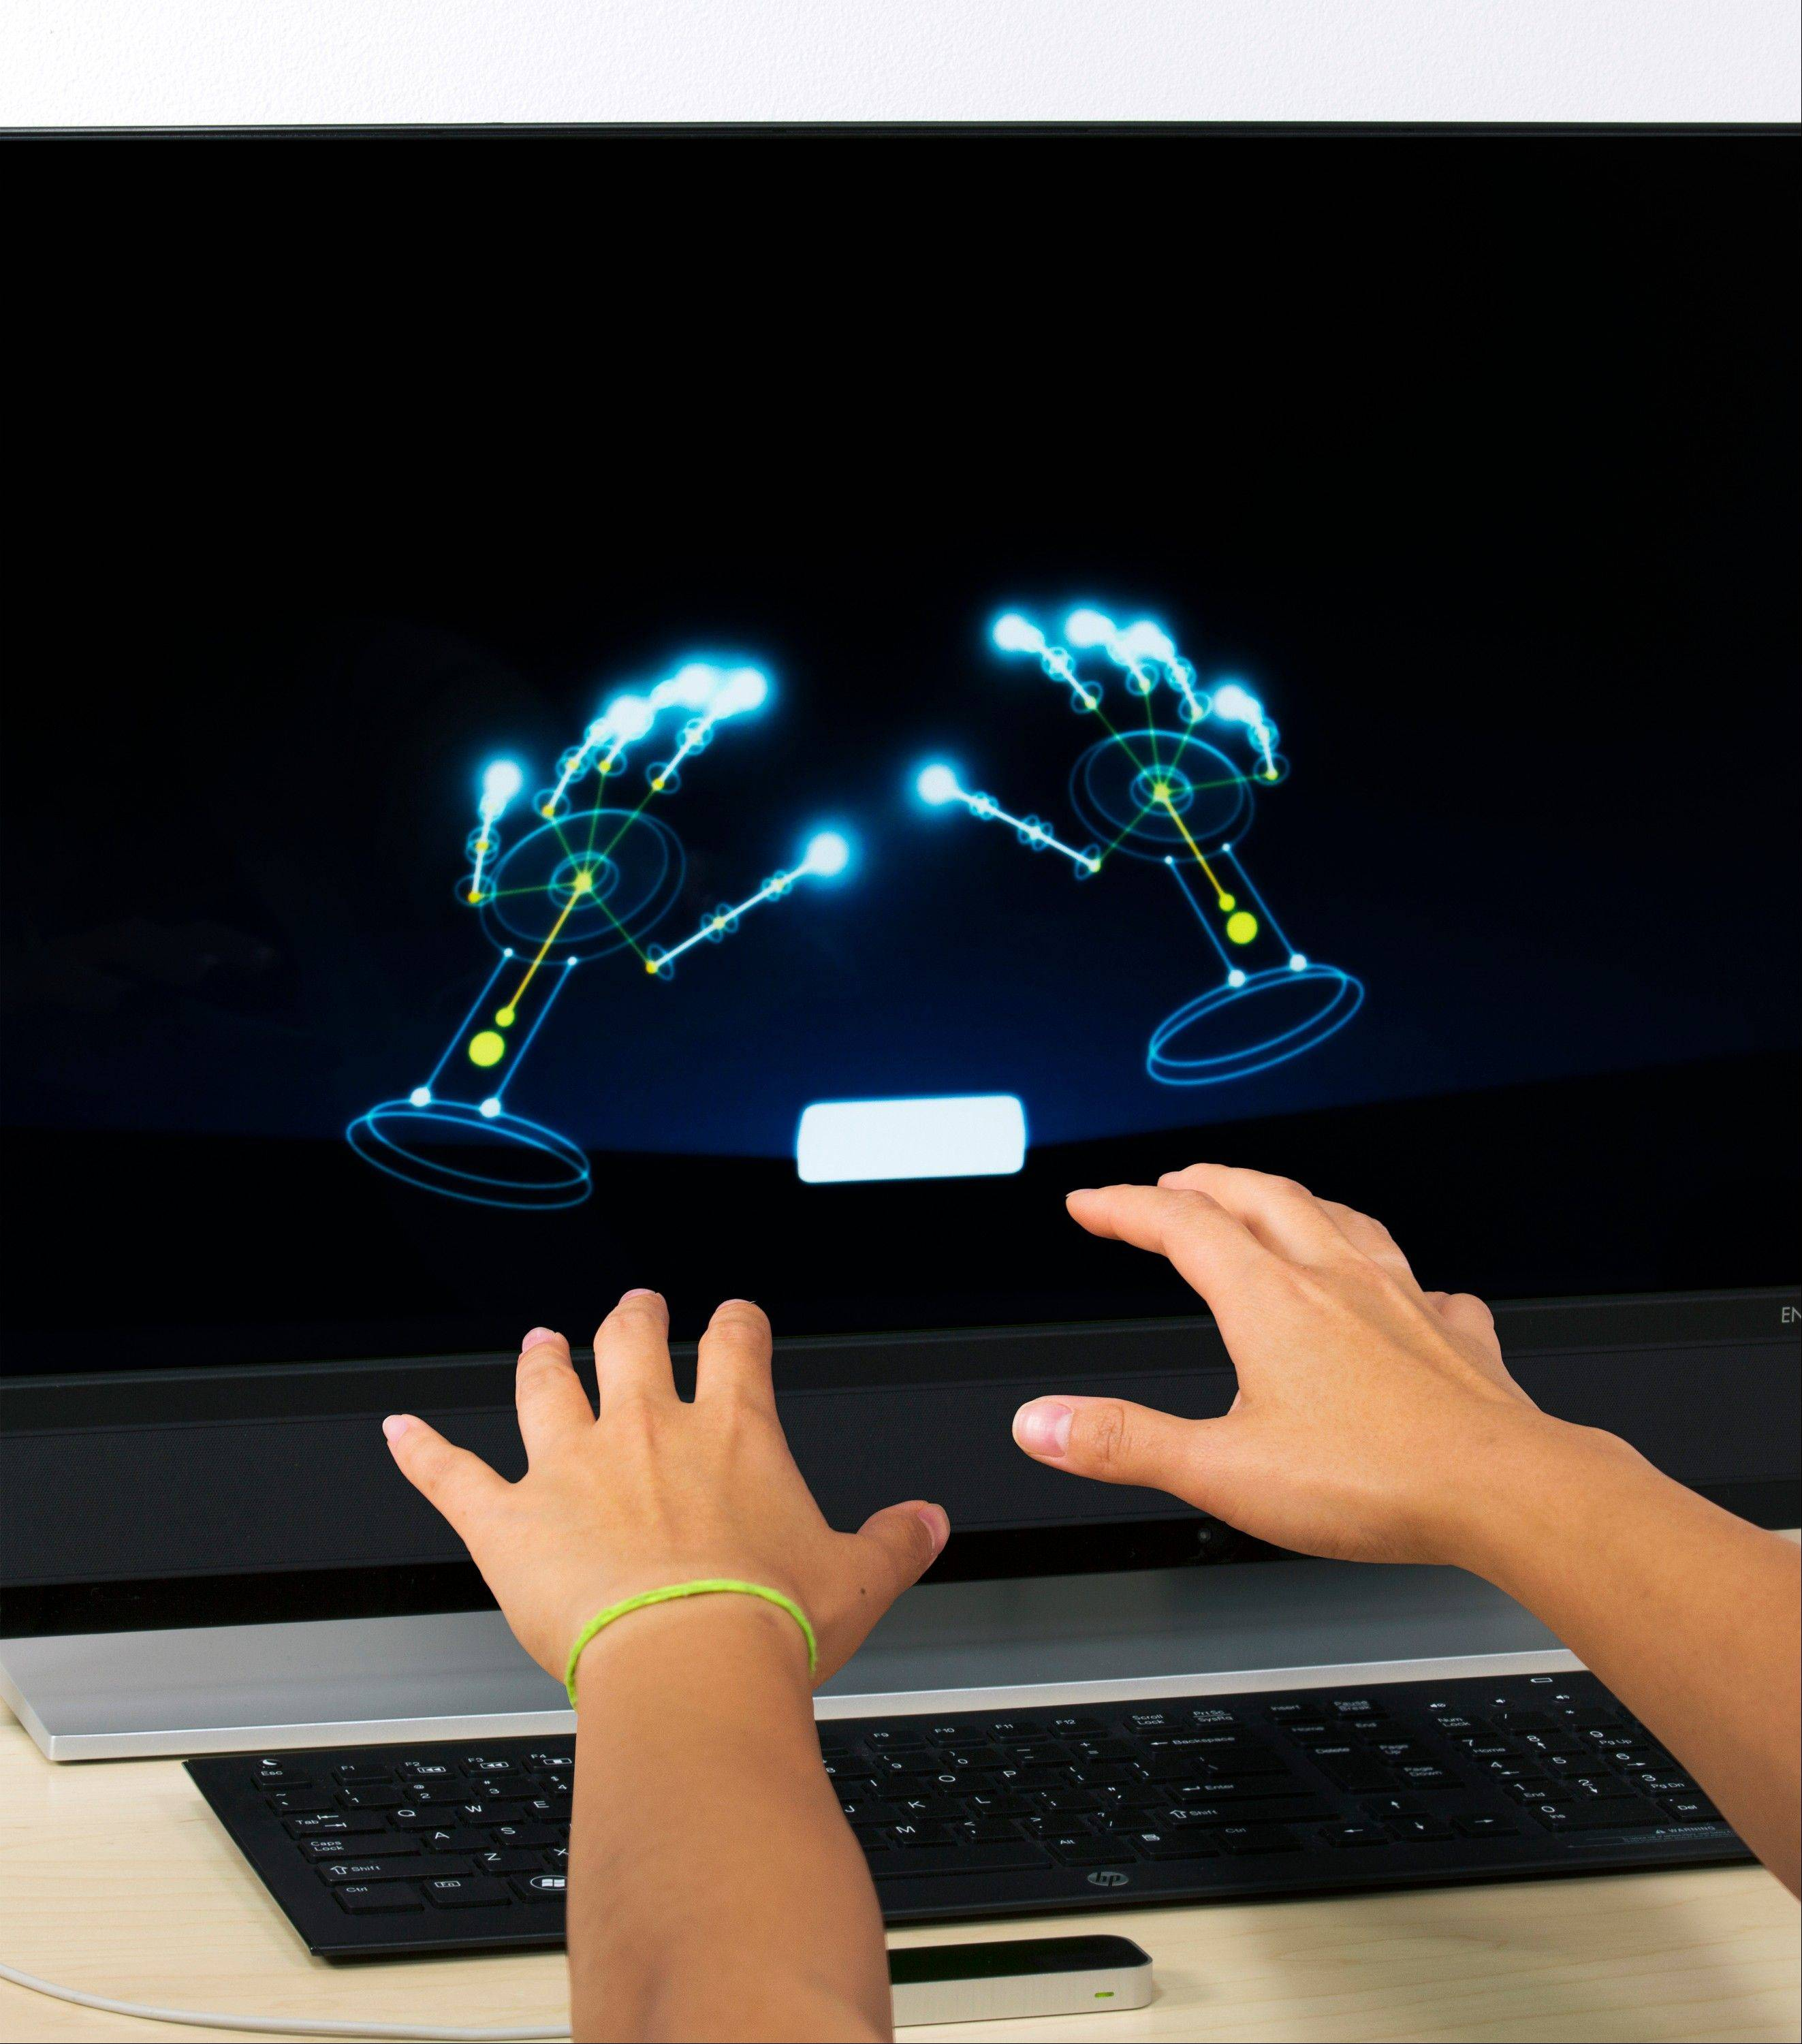 The Leap Motion Controller went on sale earlier this year.